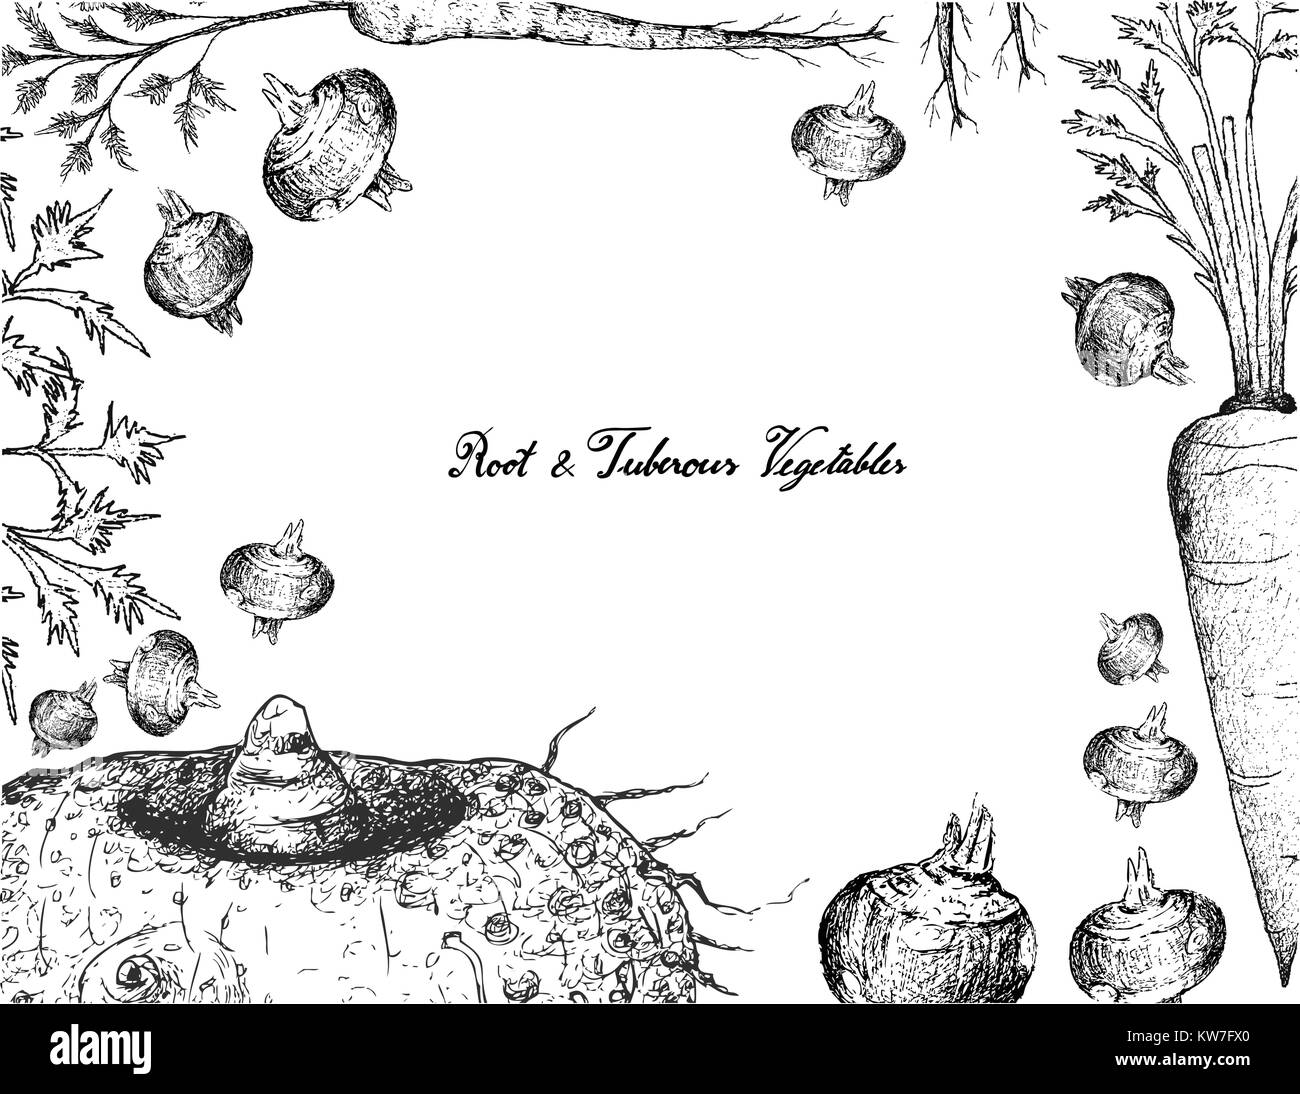 Root and Tuberous Vegetables, Illustration Frame of Hand Drawn Sketch of Water Chestnut, Hamburg Parsley, Elephant - Stock Vector